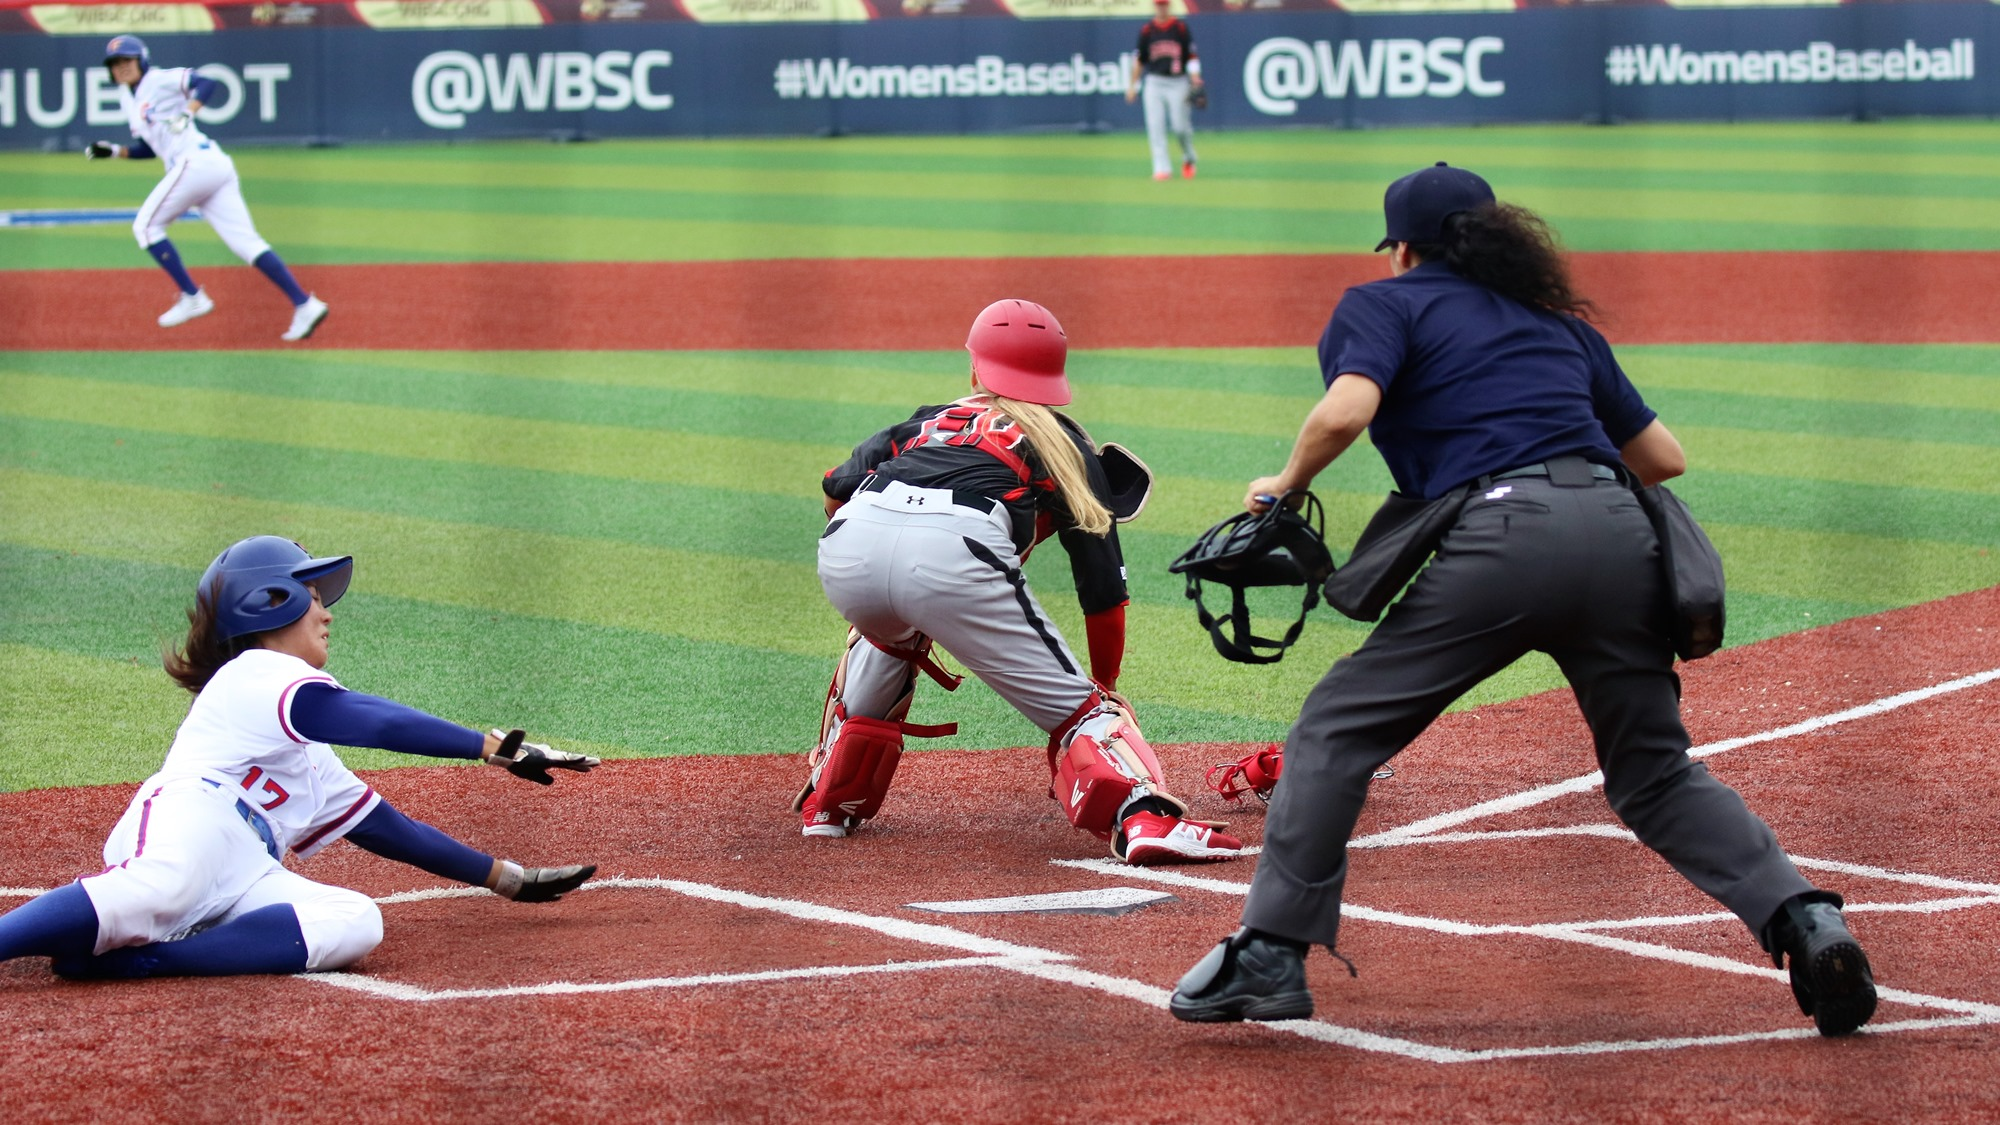 Chinese Taipei scored three in the bottom half of the frame and added three more in the third